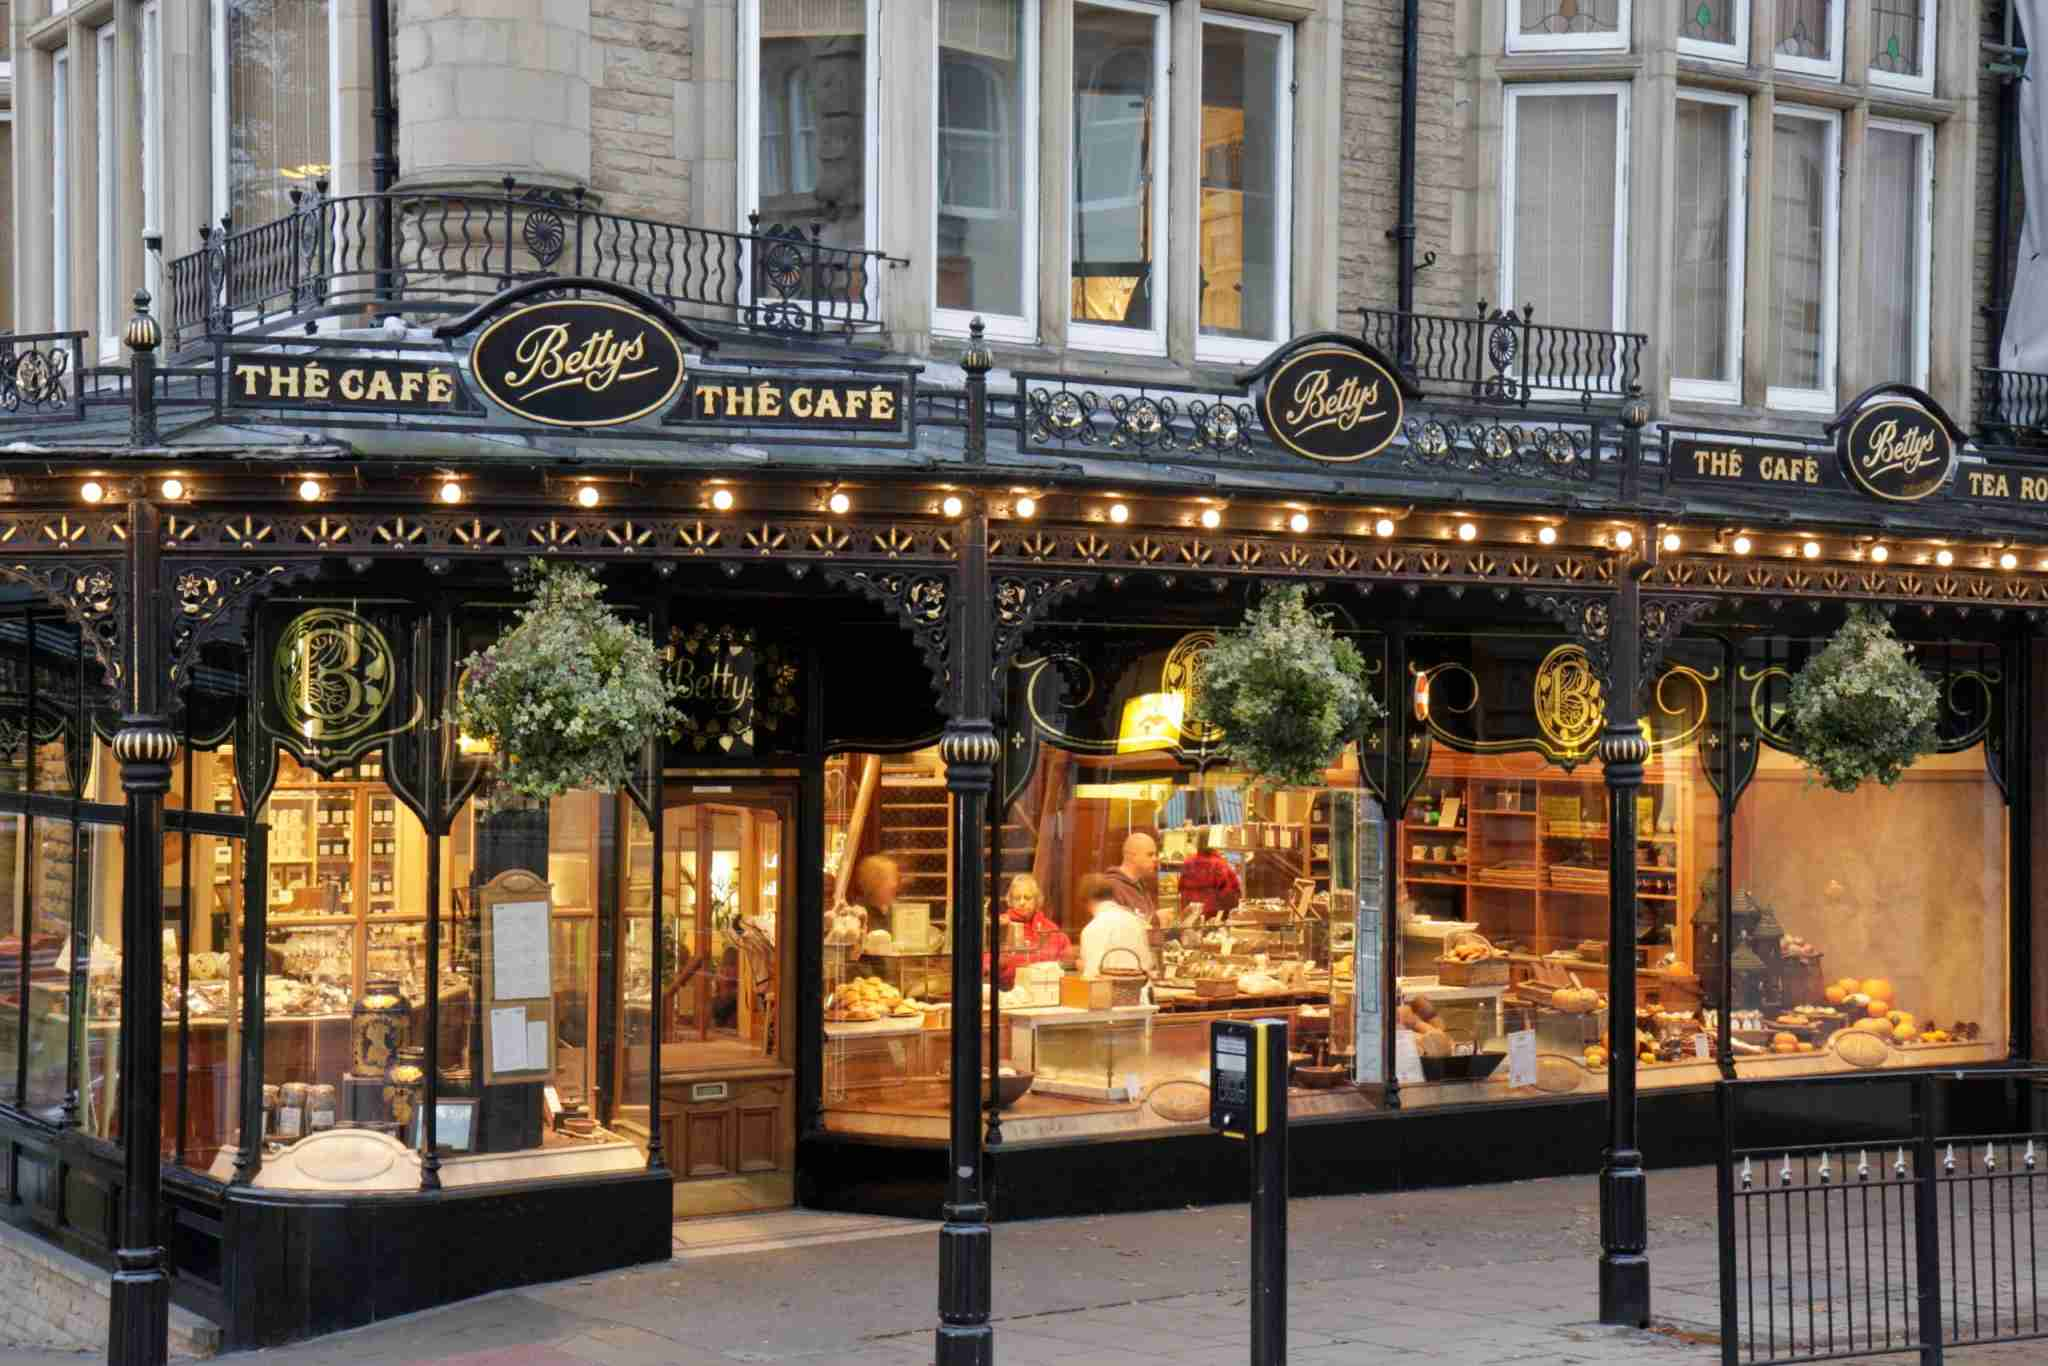 The exterior of Bettys The Caf_ on Parliament Street in Harrogate. (Photo by: Jeffrey Greenberg/Universal Images Group via Getty Images)